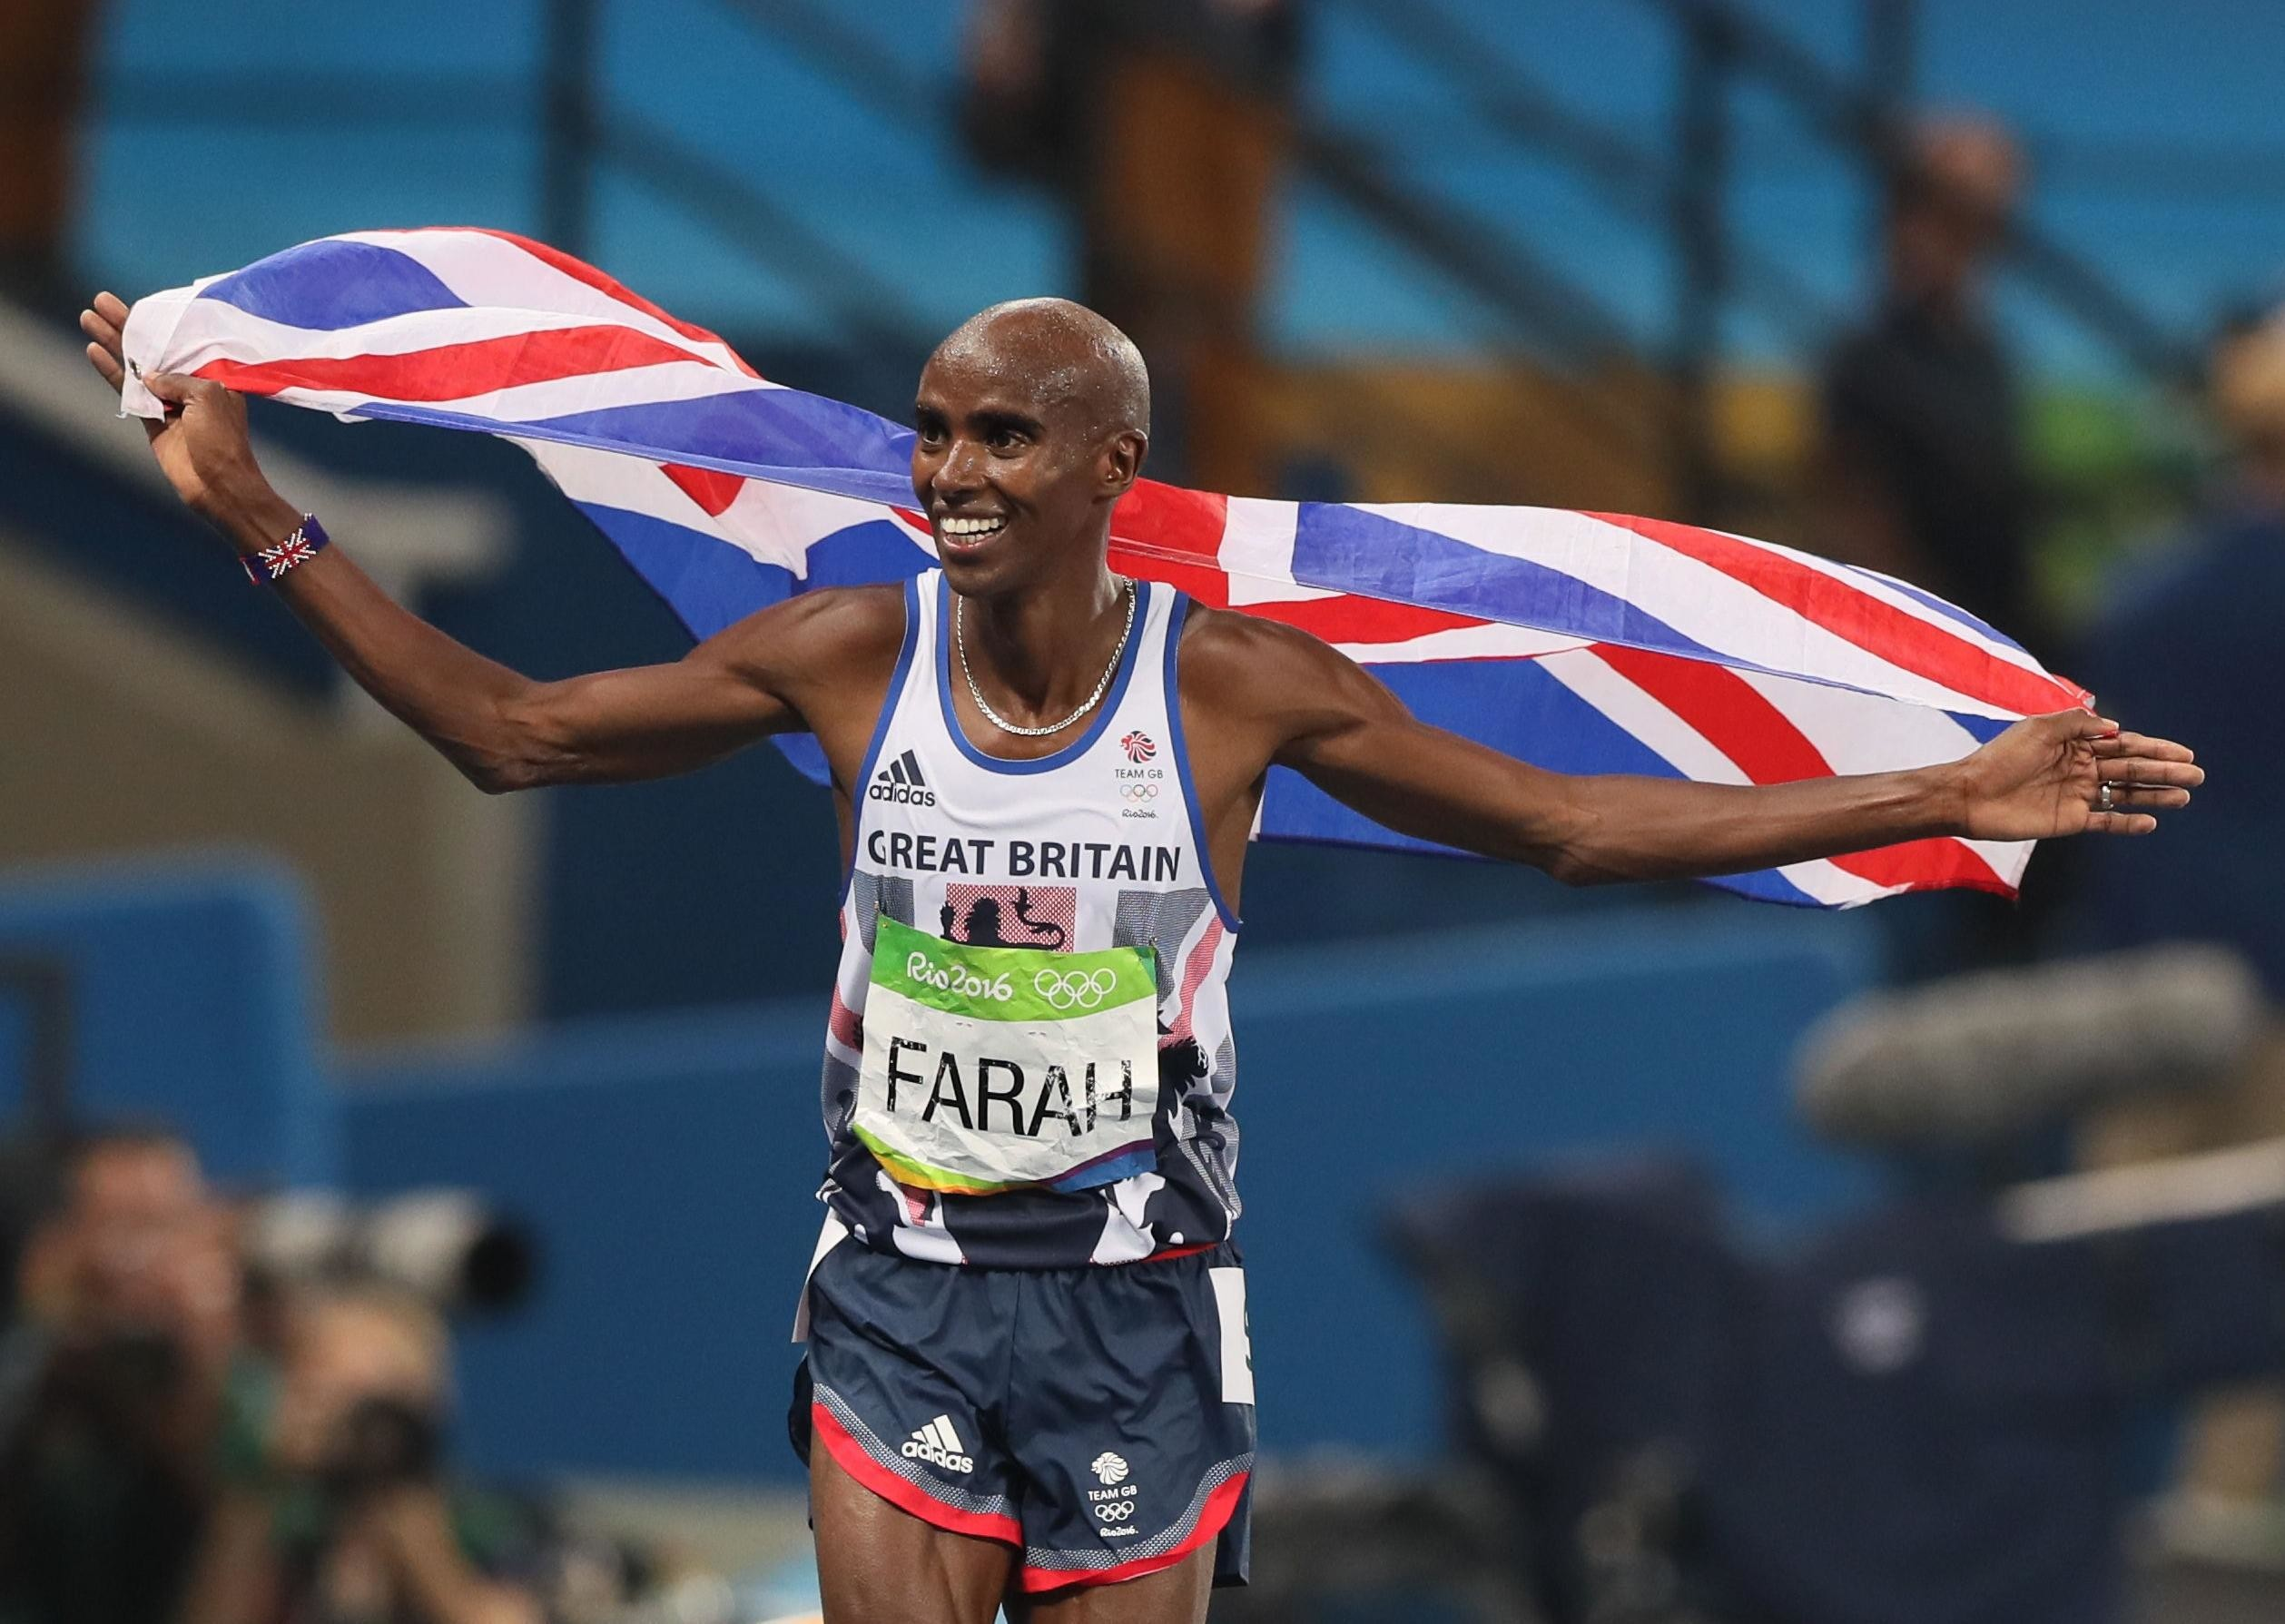 Sir Mo Farah will be targeting a new record in Larne on September 12